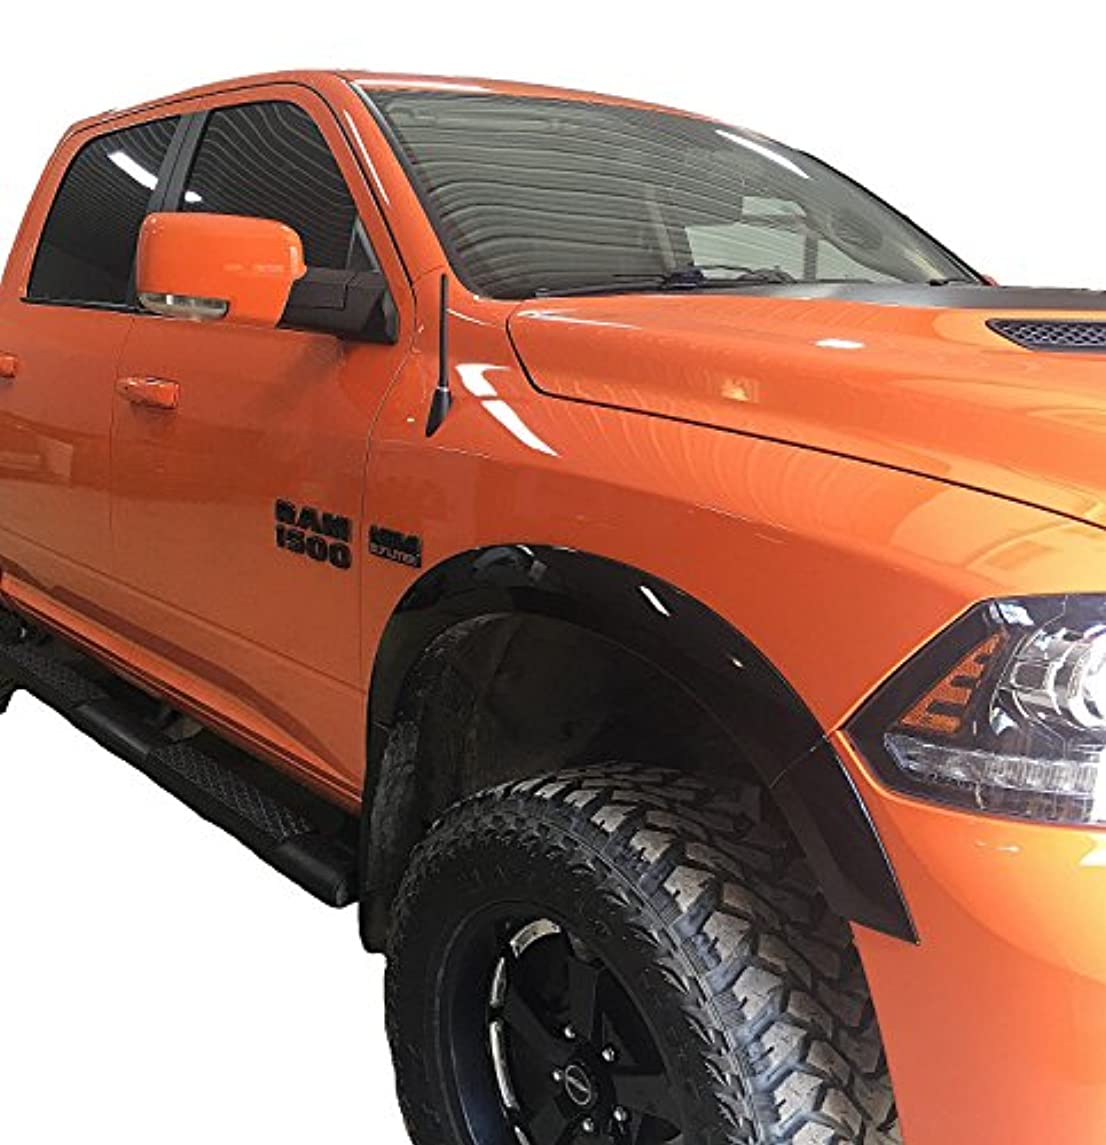 AntennaMastsRus - The Original 6 3/4 INCH is Compatible with Dodge Ram Truck 1500 (2009-2019) - Short Rubber Antenna - Reception Guaranteed - German Engineered - Internal Copper Coil